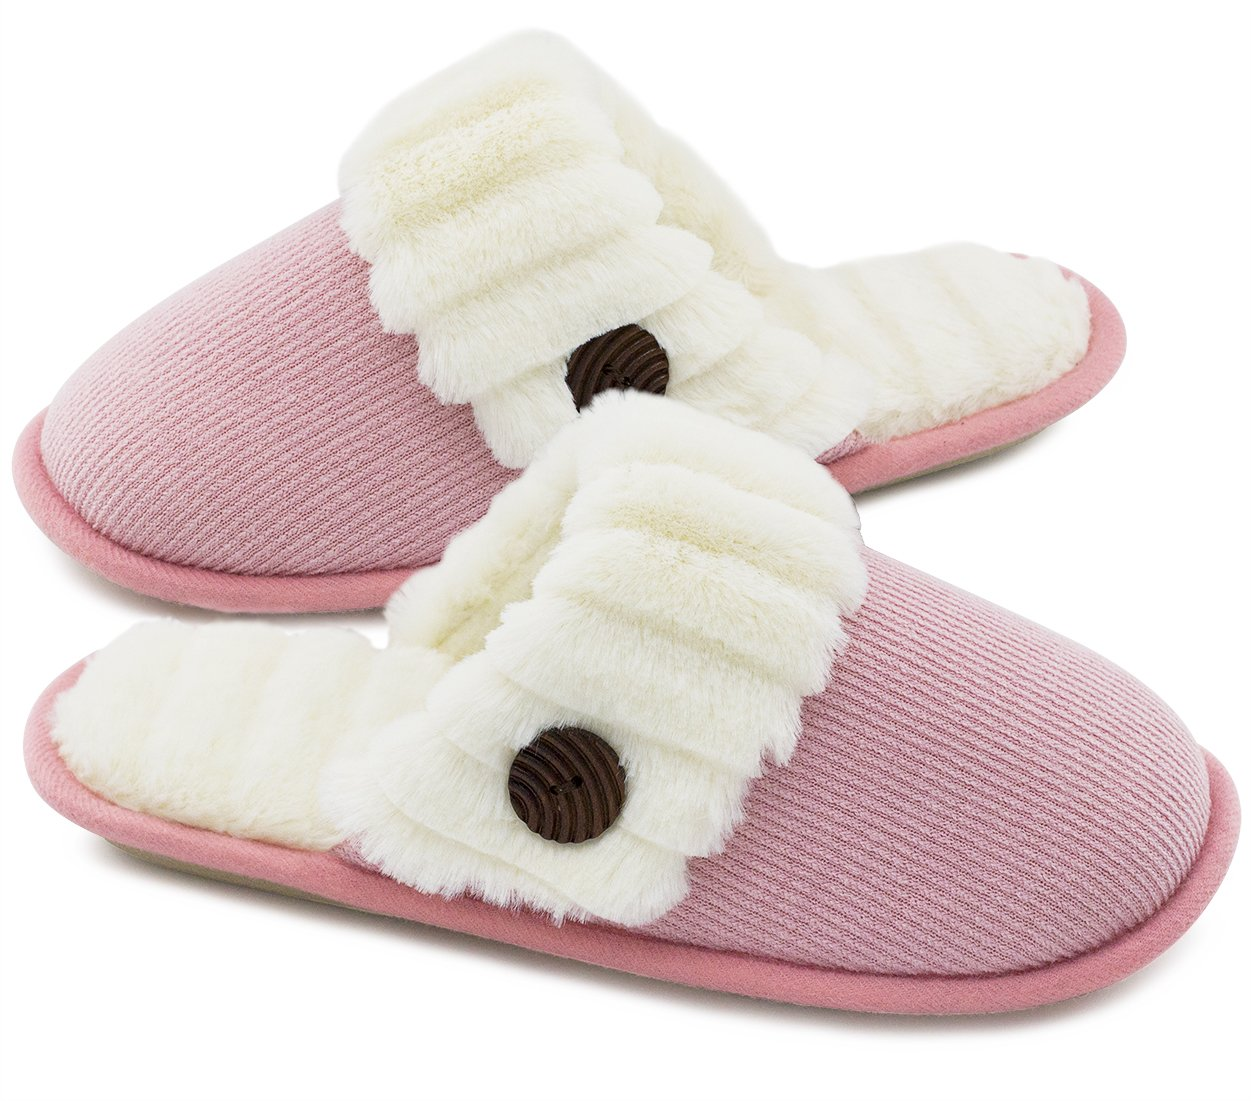 HomeTop Women's Cute Fuzzy Knitted Memory Foam Indoor House Slippers for Families Couples (37-38 (US Women's 7-8), Pink)